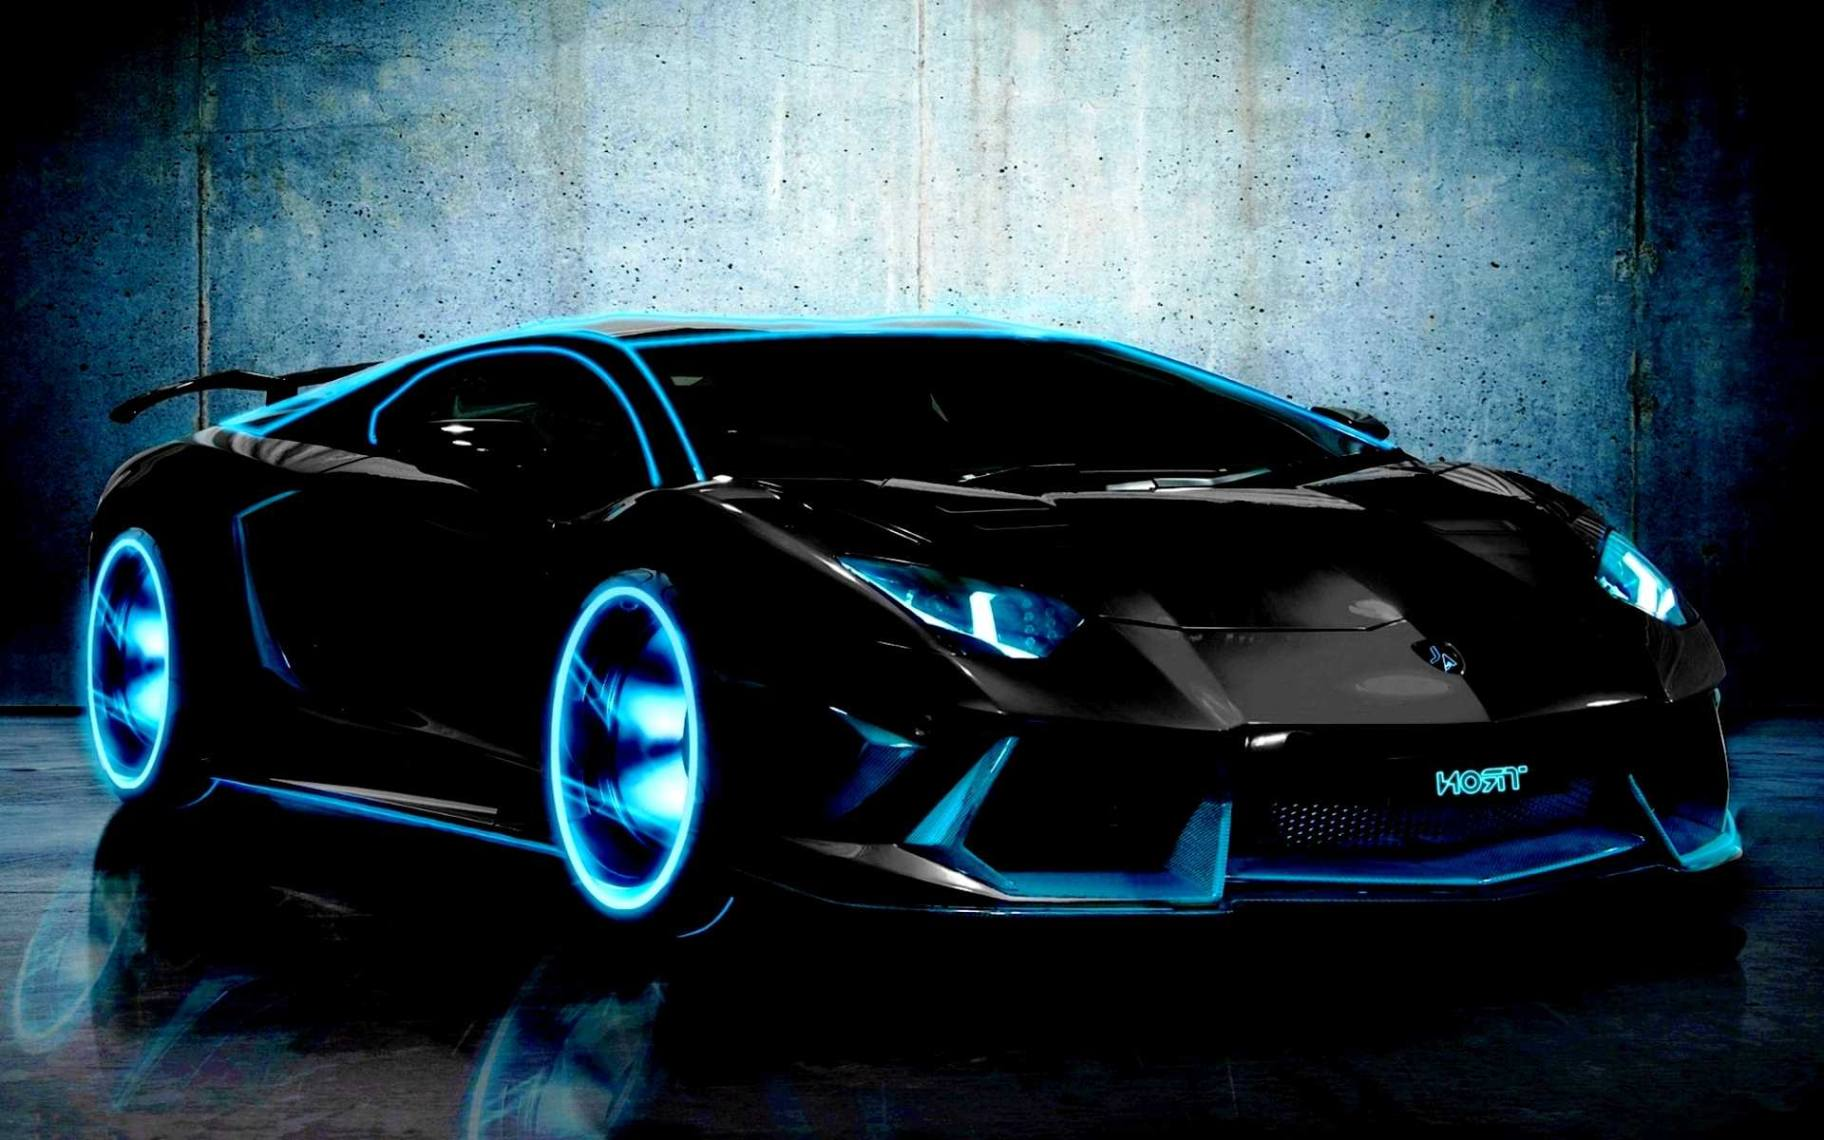 Cool Lamborghini Wallpapers - Wallpaper Cave